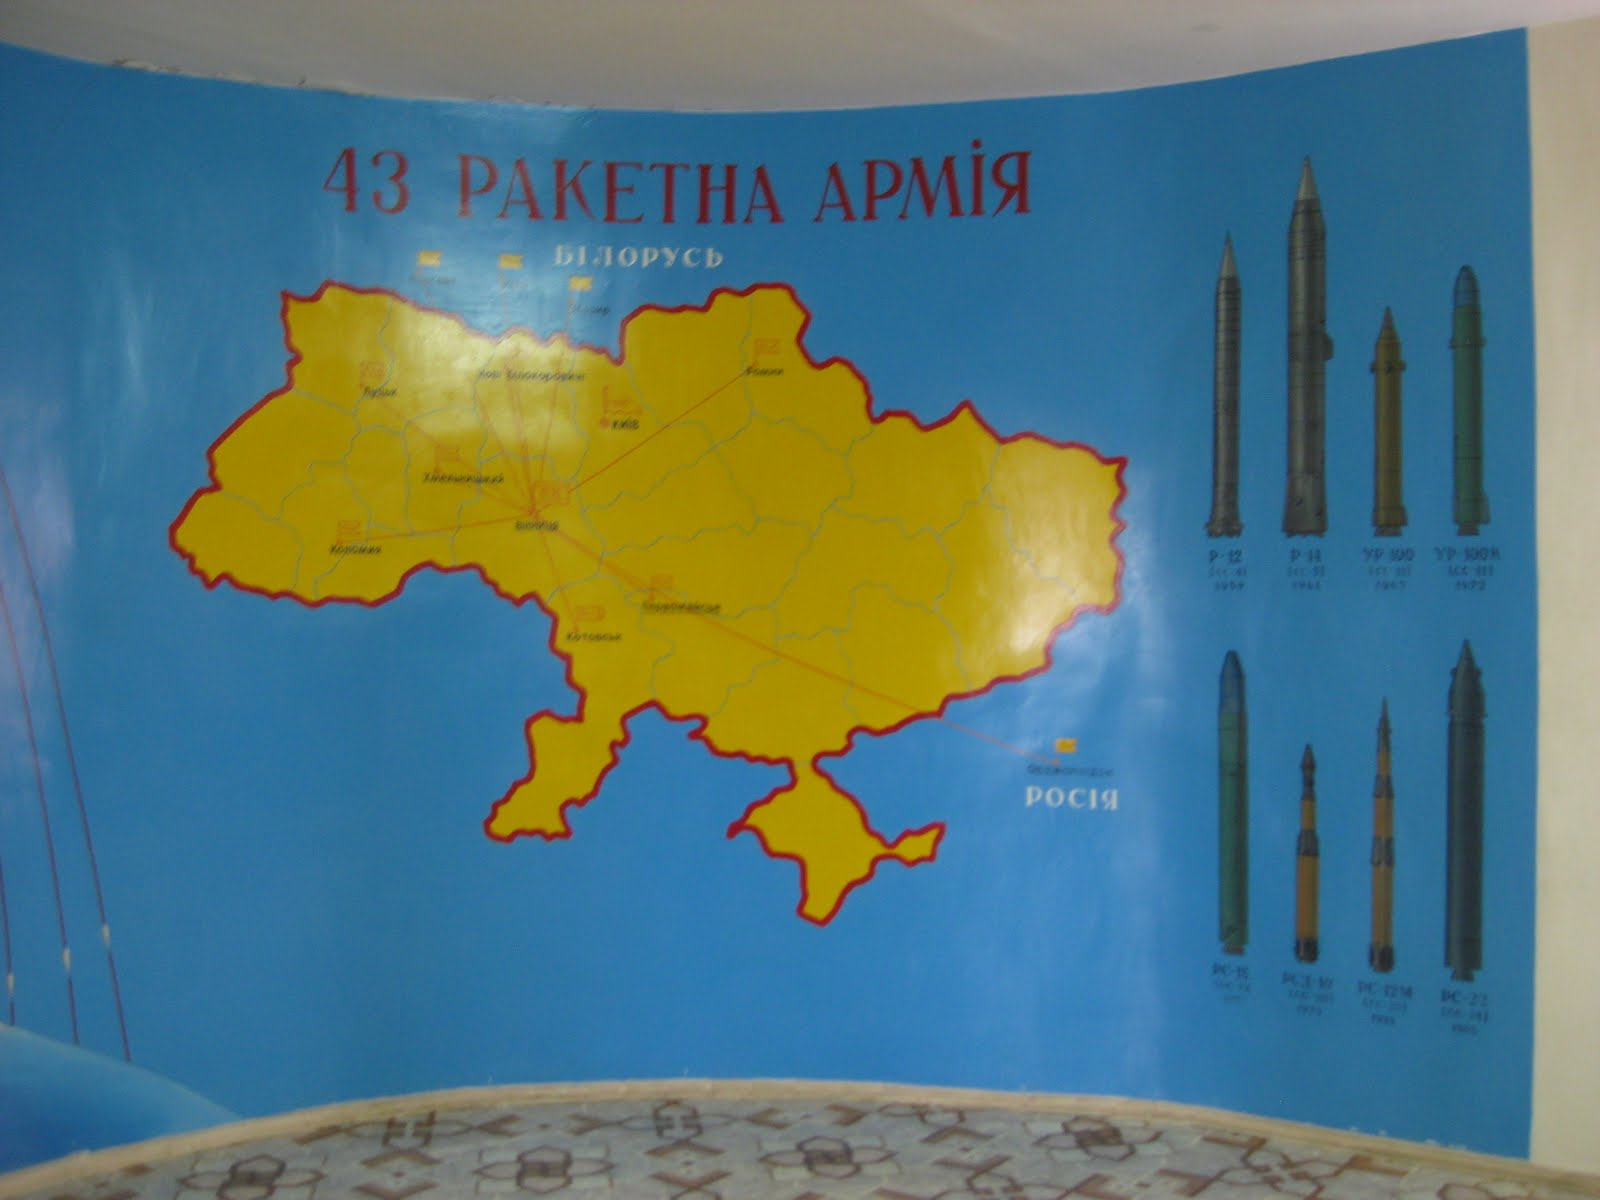 and gave us stats on a litany of missiles andrei an administrator at our school tirelessly translated the minutia as we stood and stared at paintings